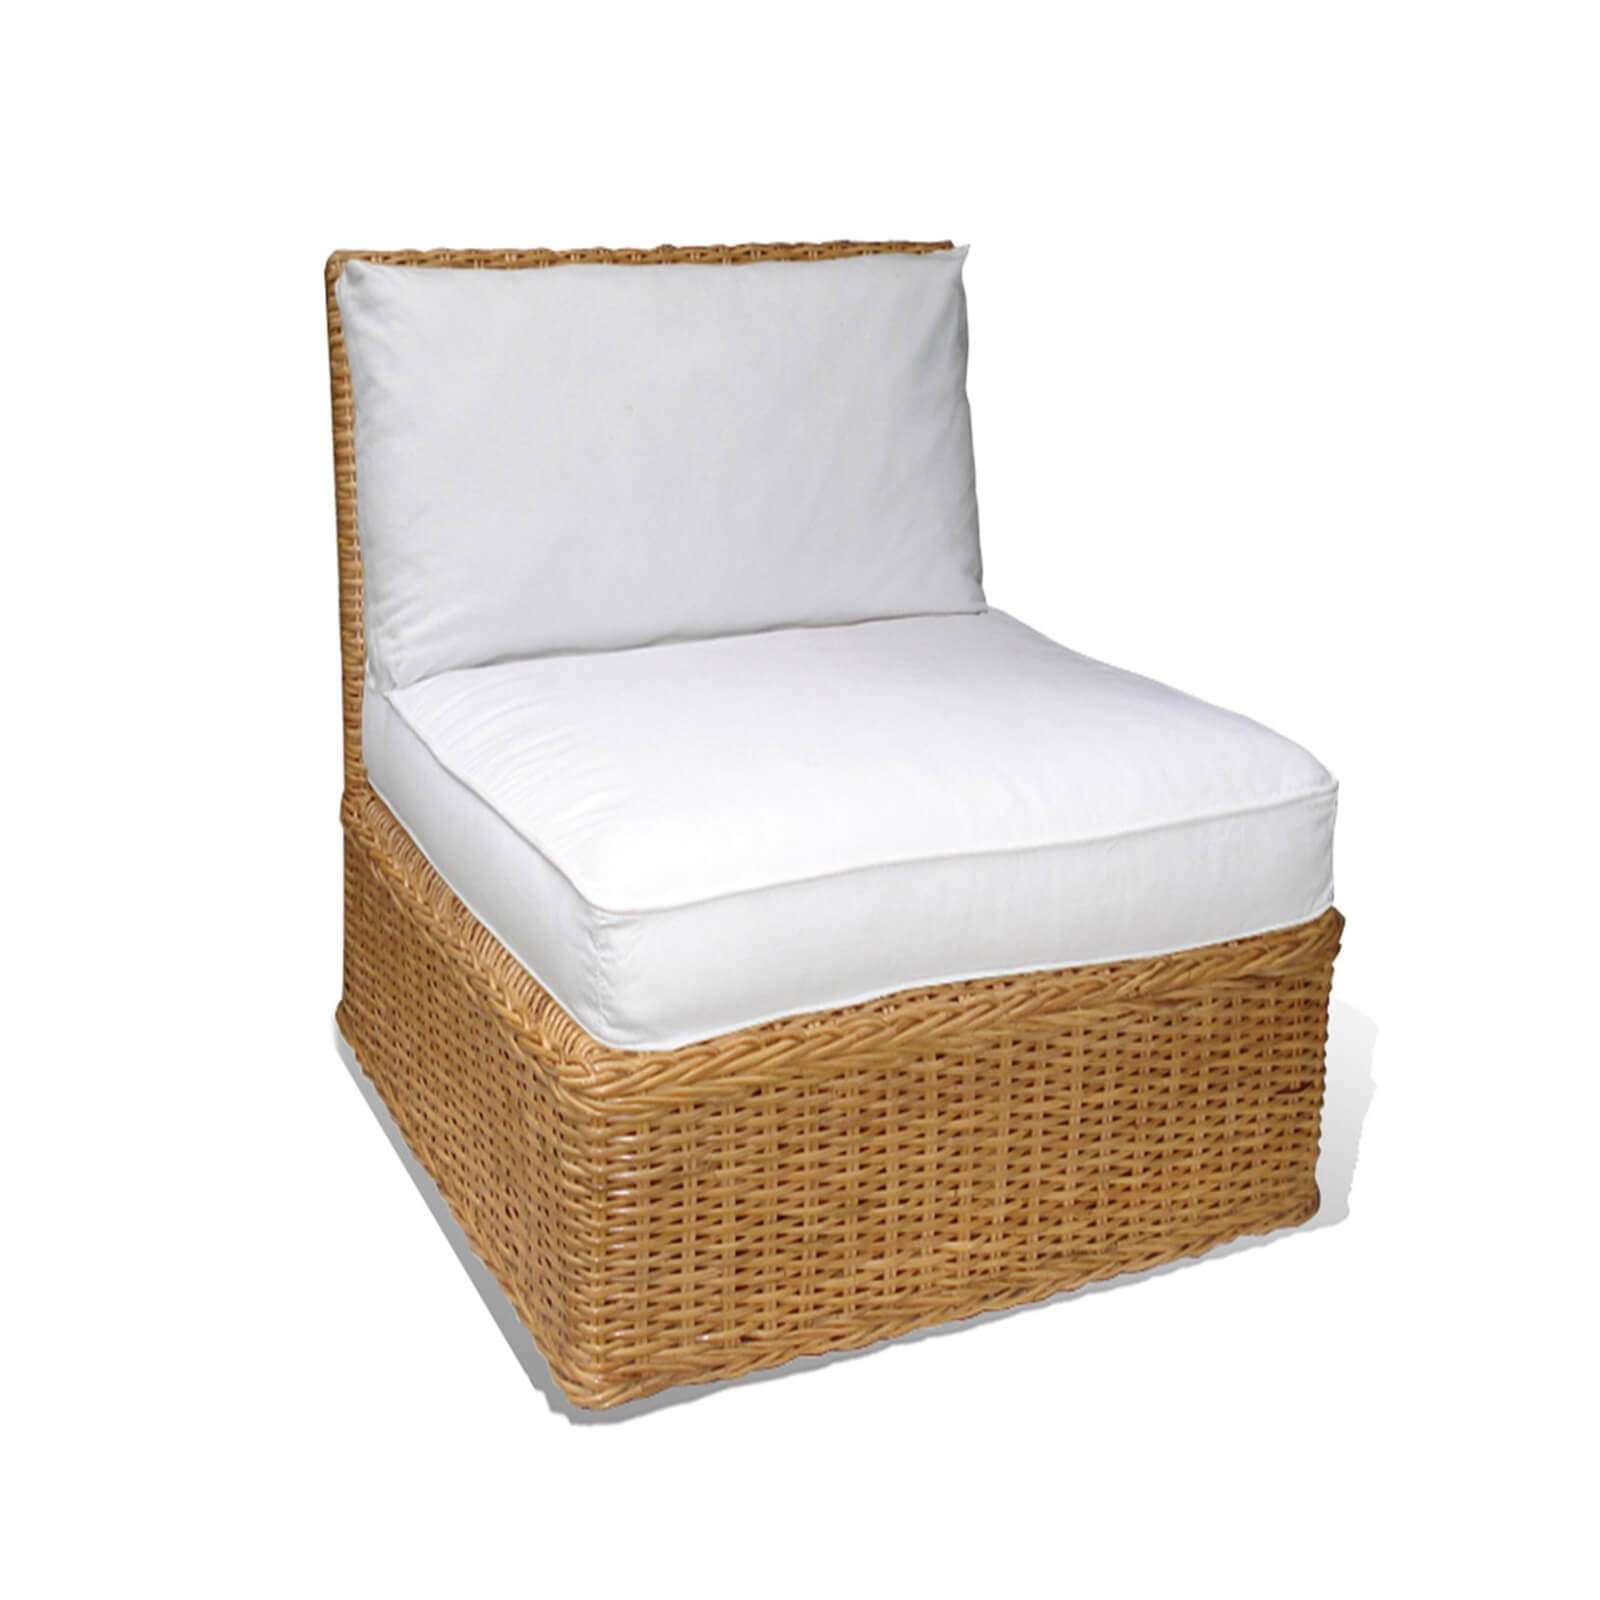 WICKER SLIPPER CHAIR